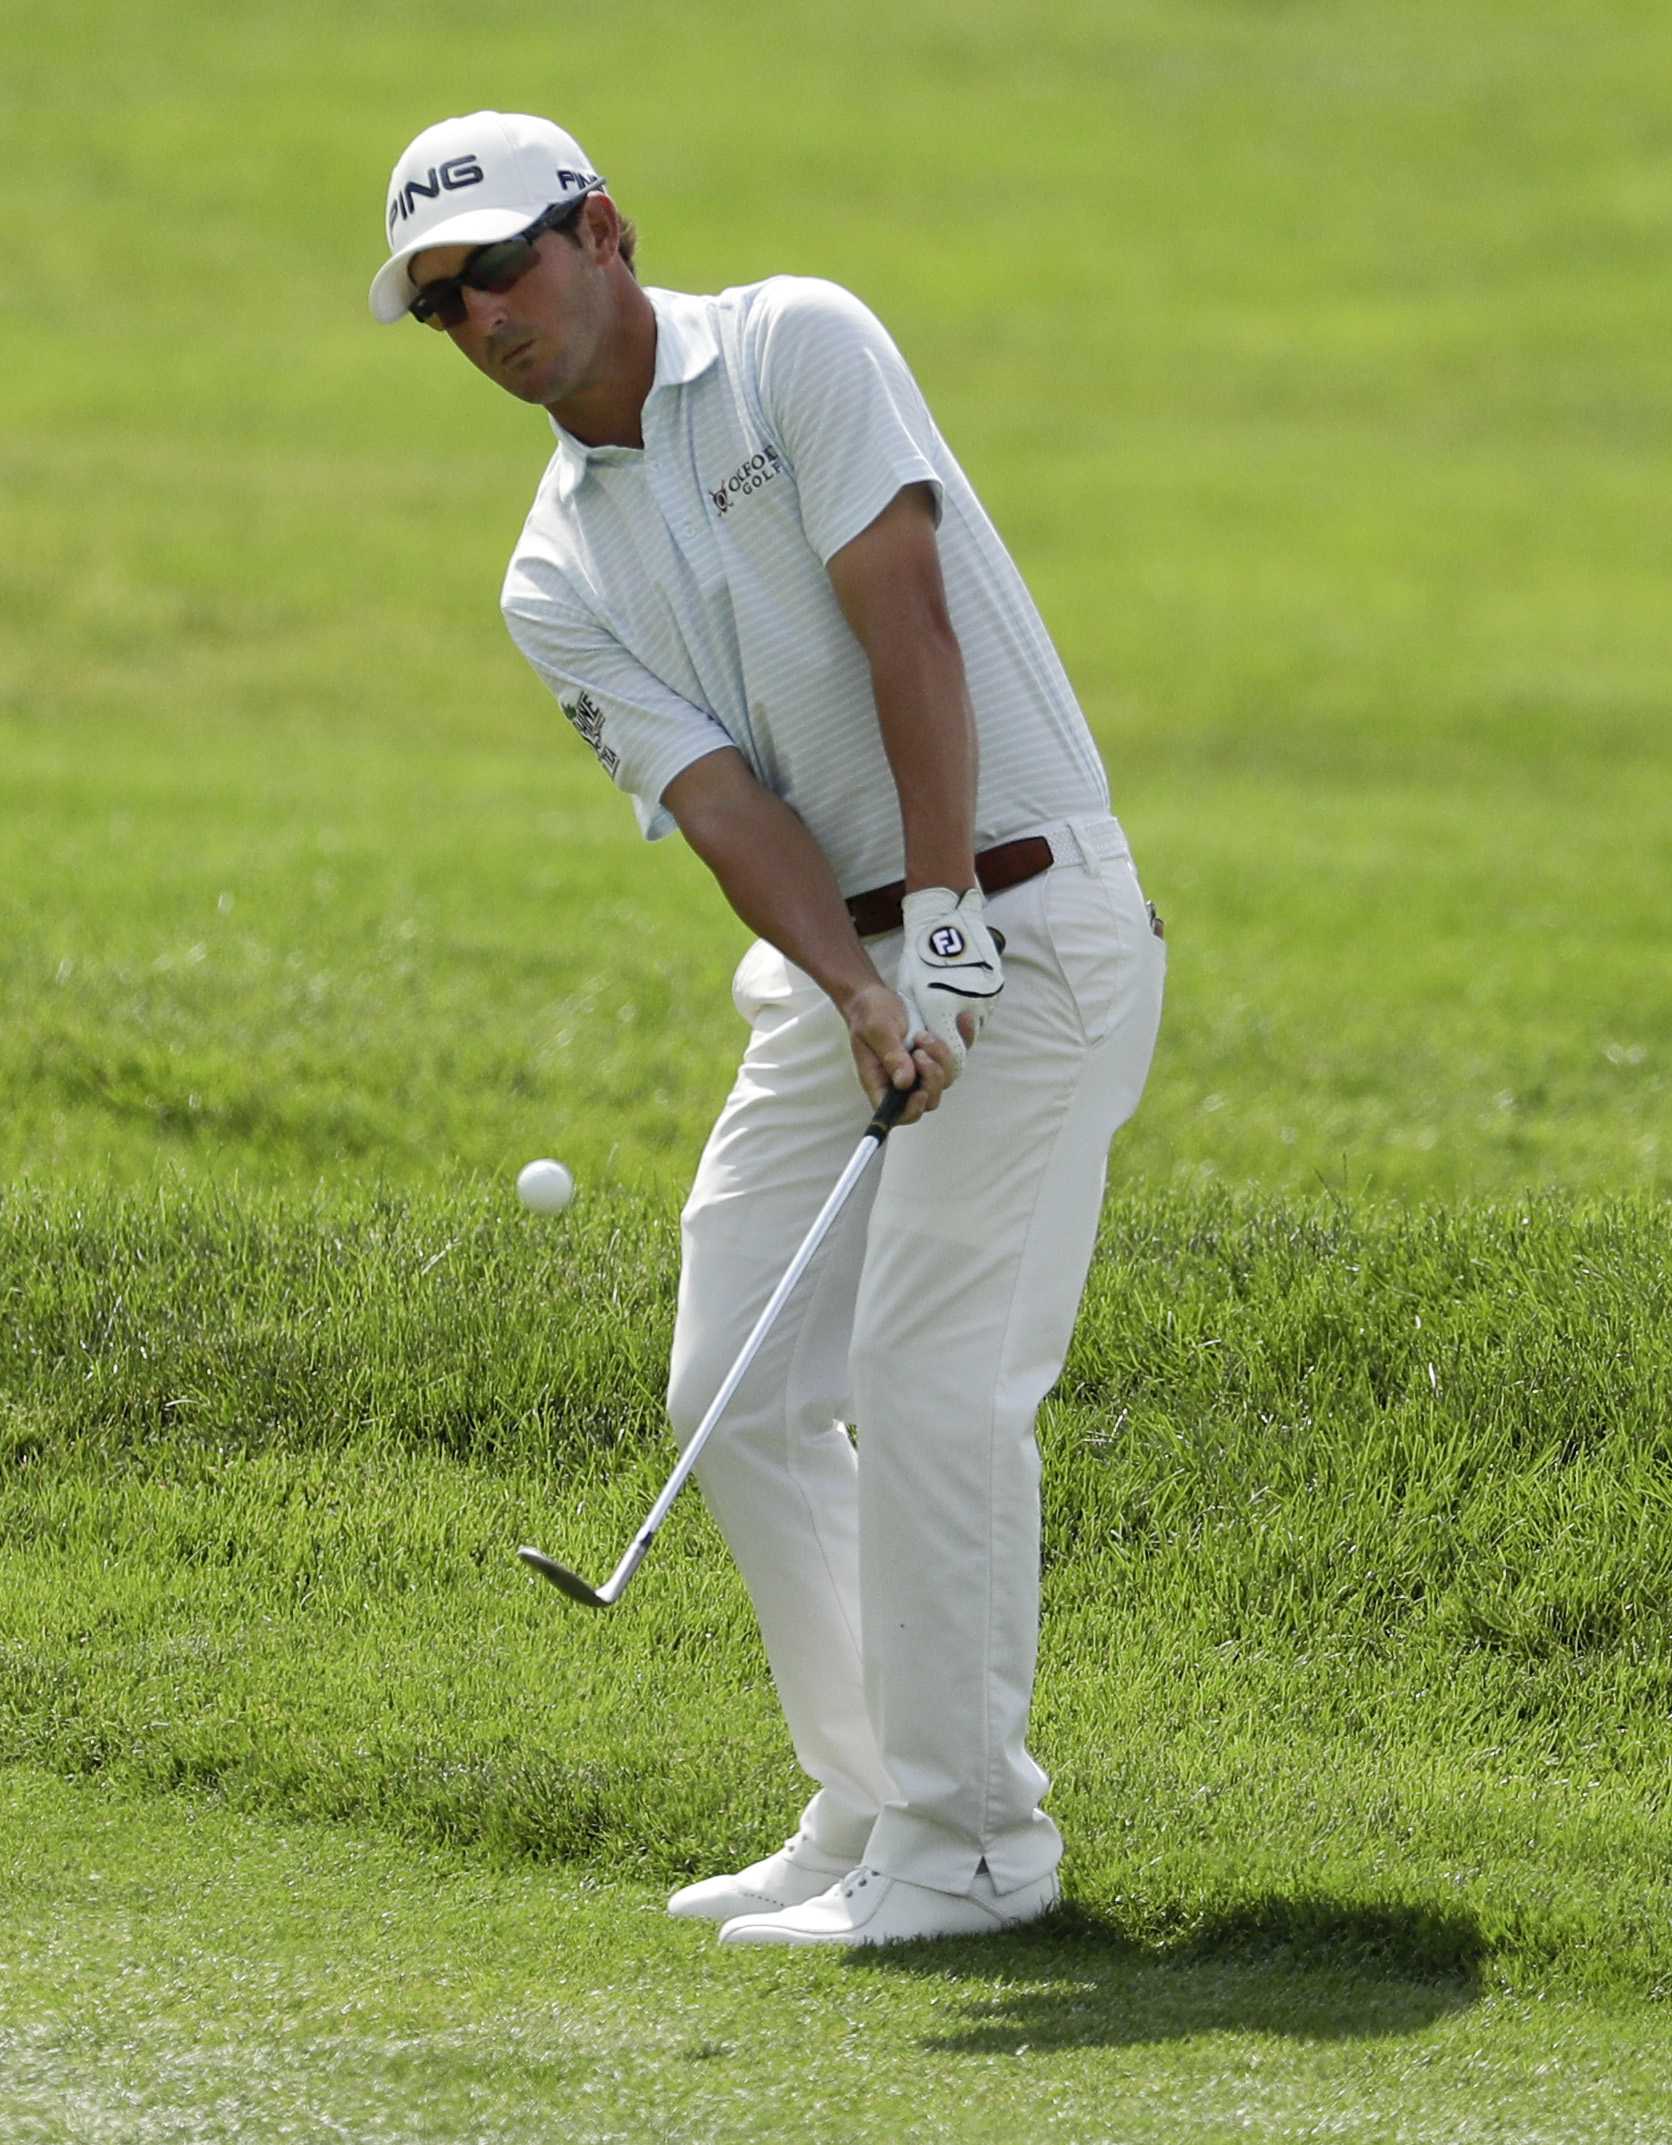 Andrew Landry hits a chip on the first hole during the final round of the U.S. Open golf championship at Oakmont Country Club on Sunday, June 19, 2016, in Oakmont, Pa. (AP Photo/Charlie Riedel)